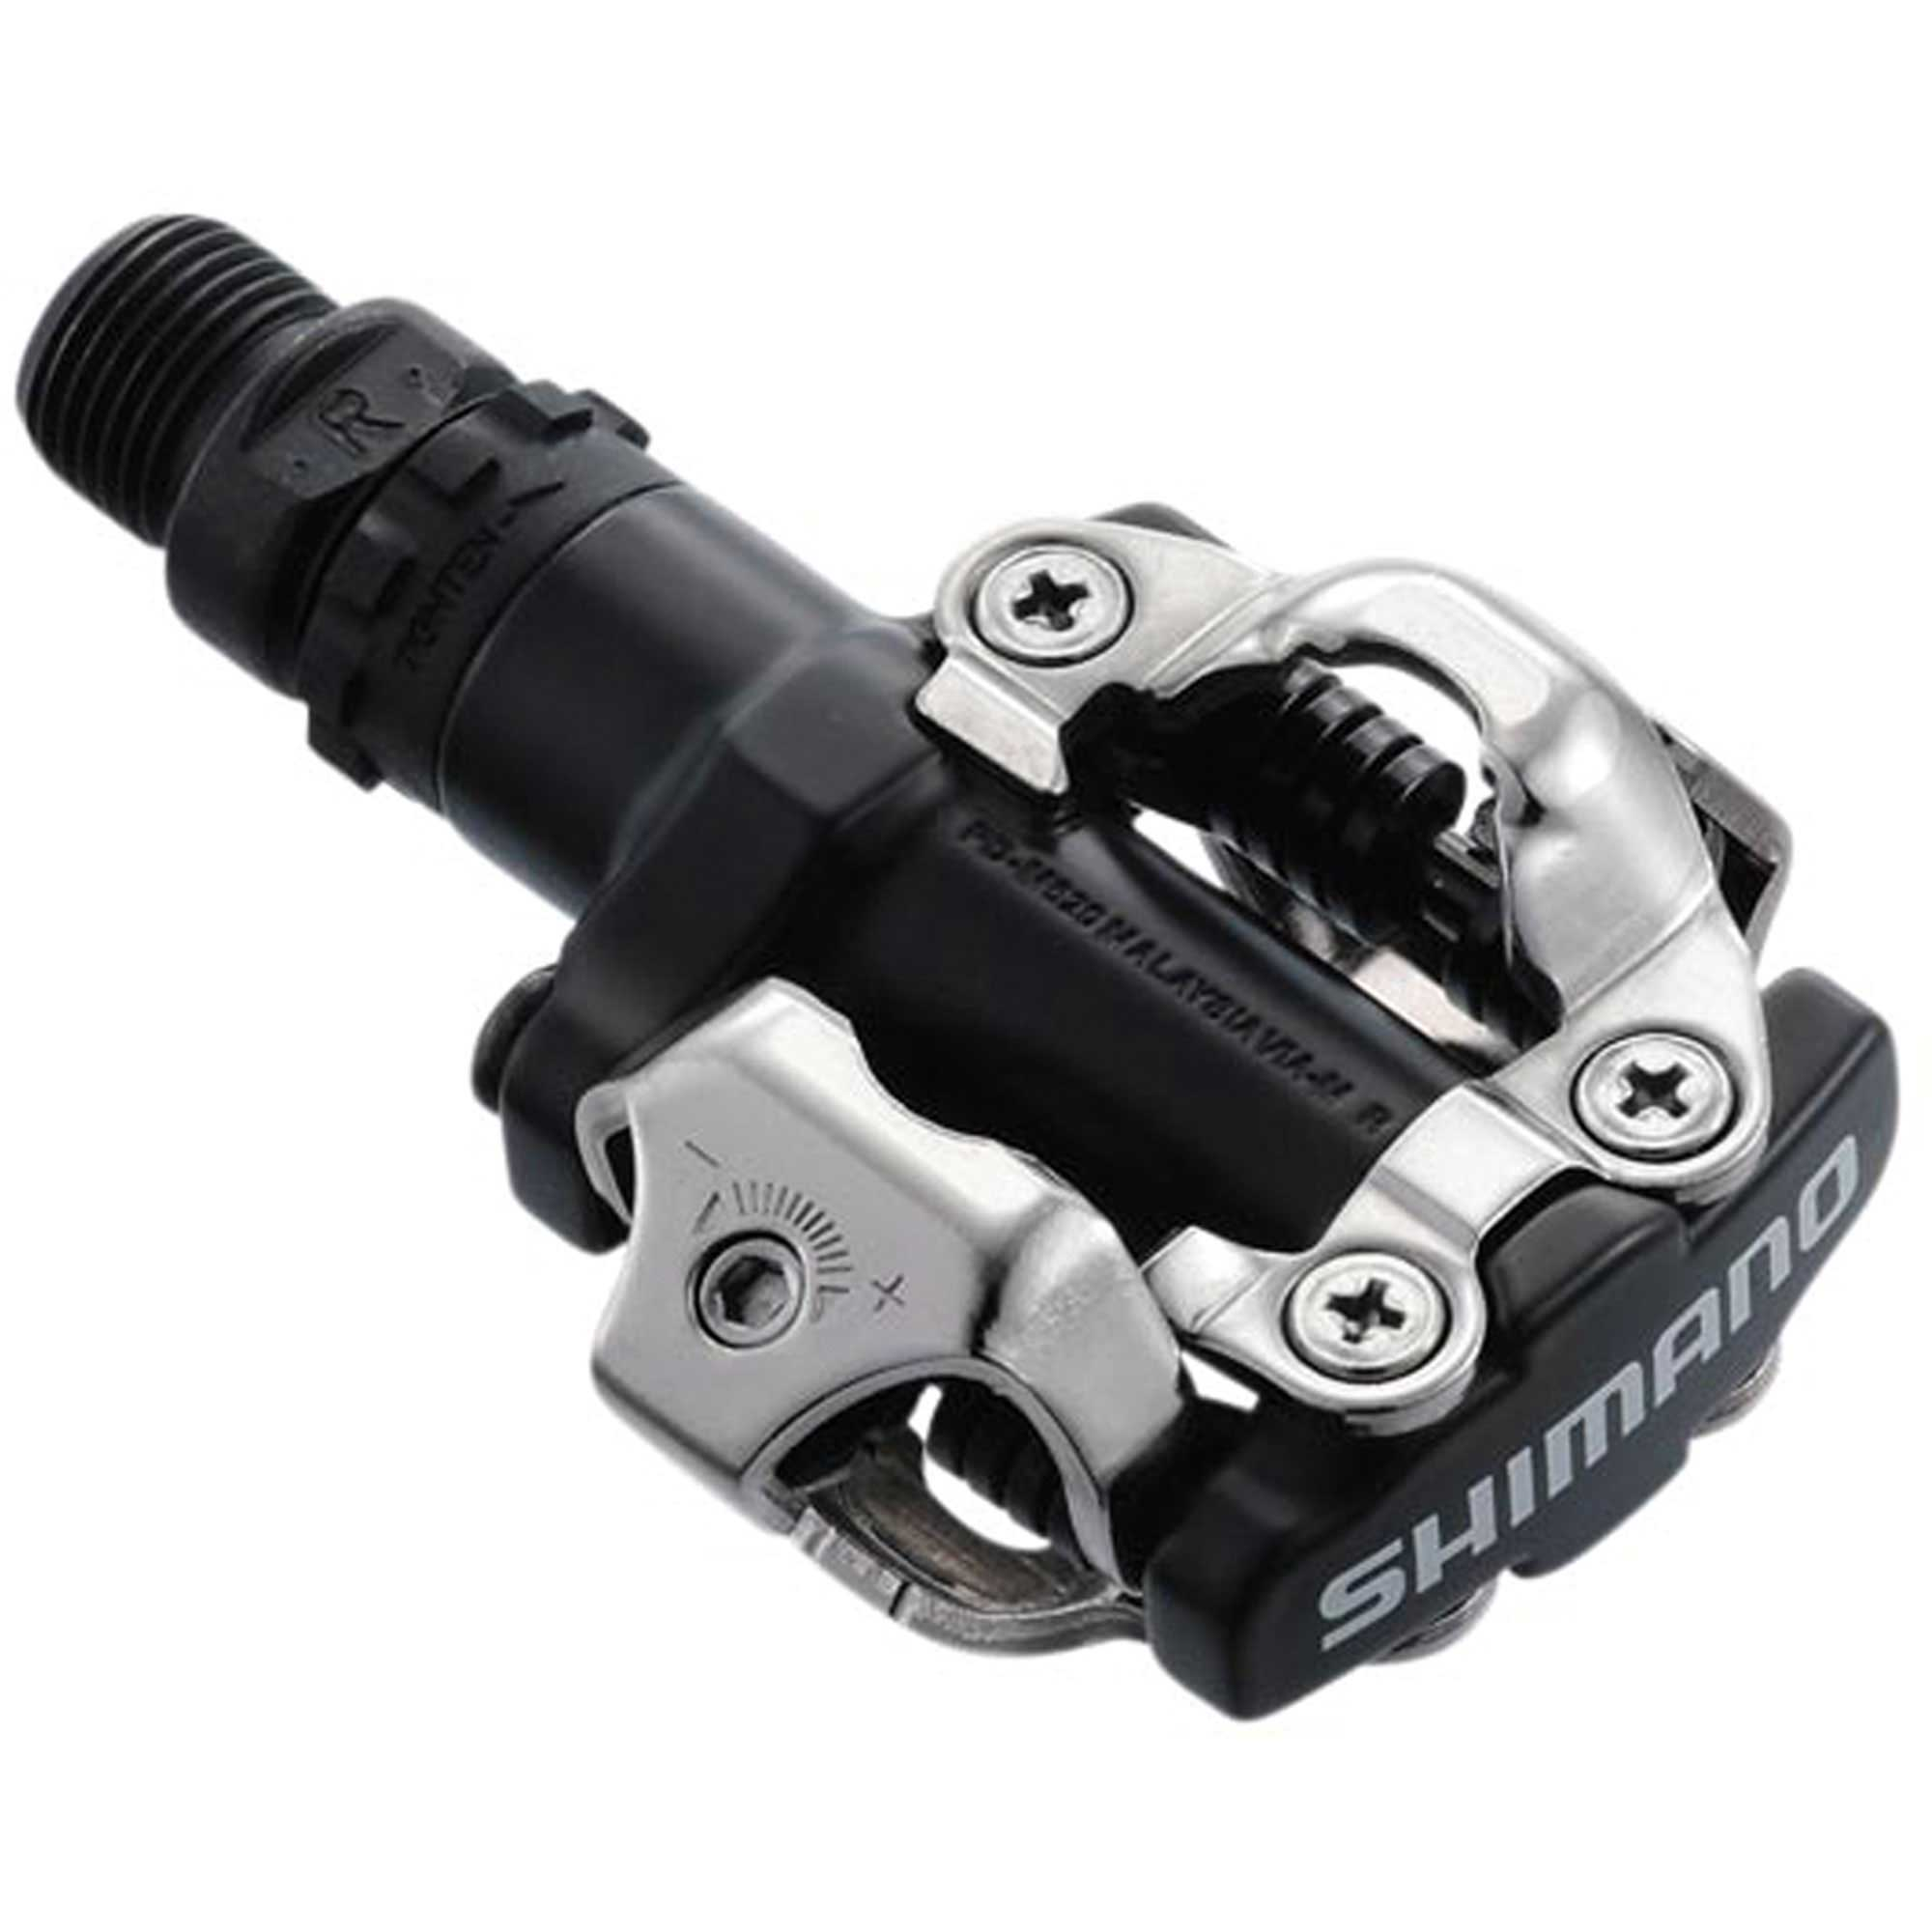 Shimano M-520 SPD Clipless Pedals w// Cleats Black